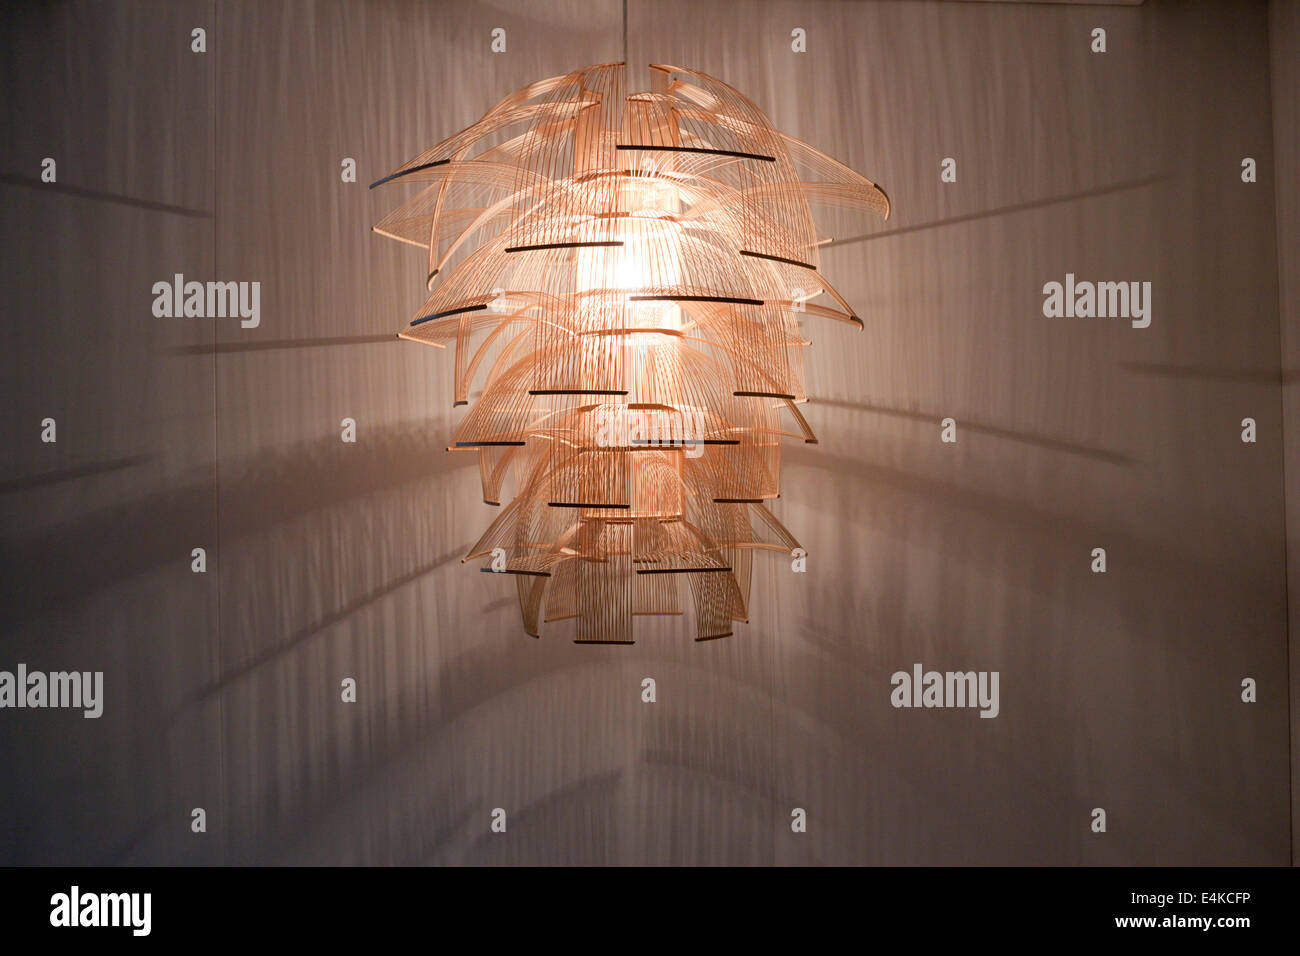 Oriental Lighting Like Bird S Cage Milano Lombardia Italy Stock Photo Alamy